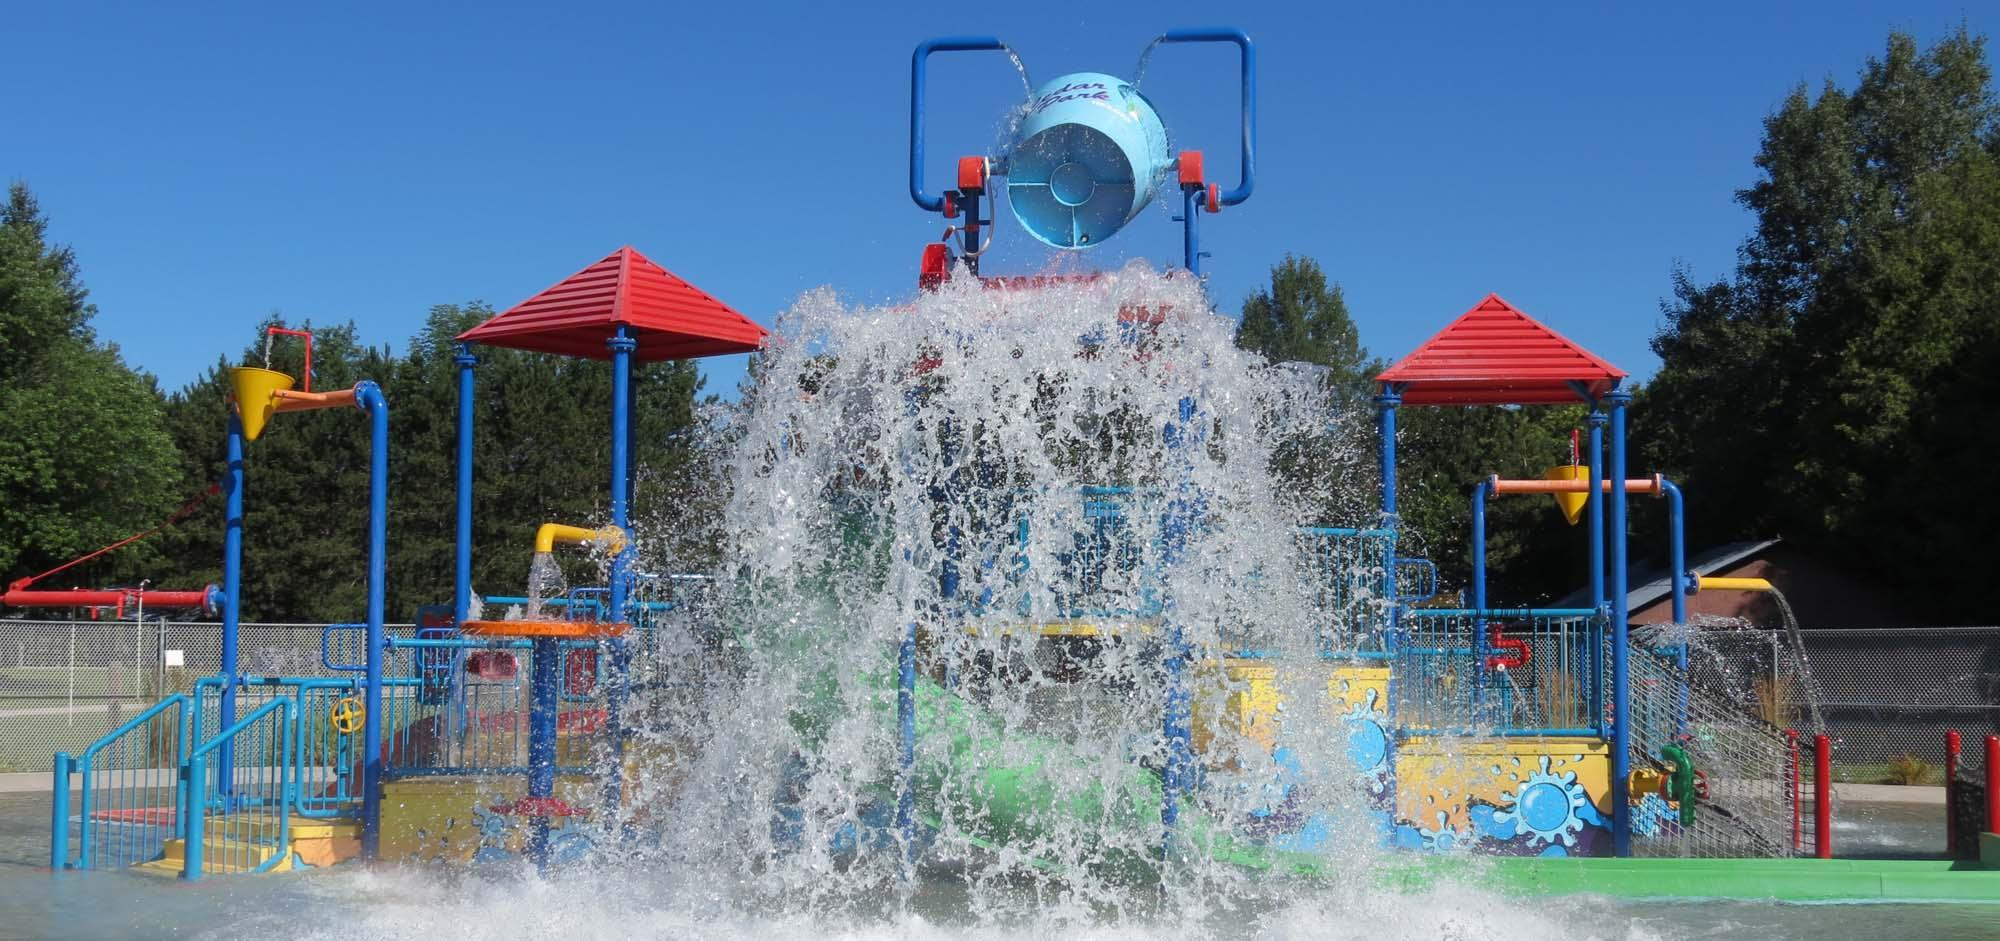 Autism Ontario - Durham - A Day of Fun at the Water Park!